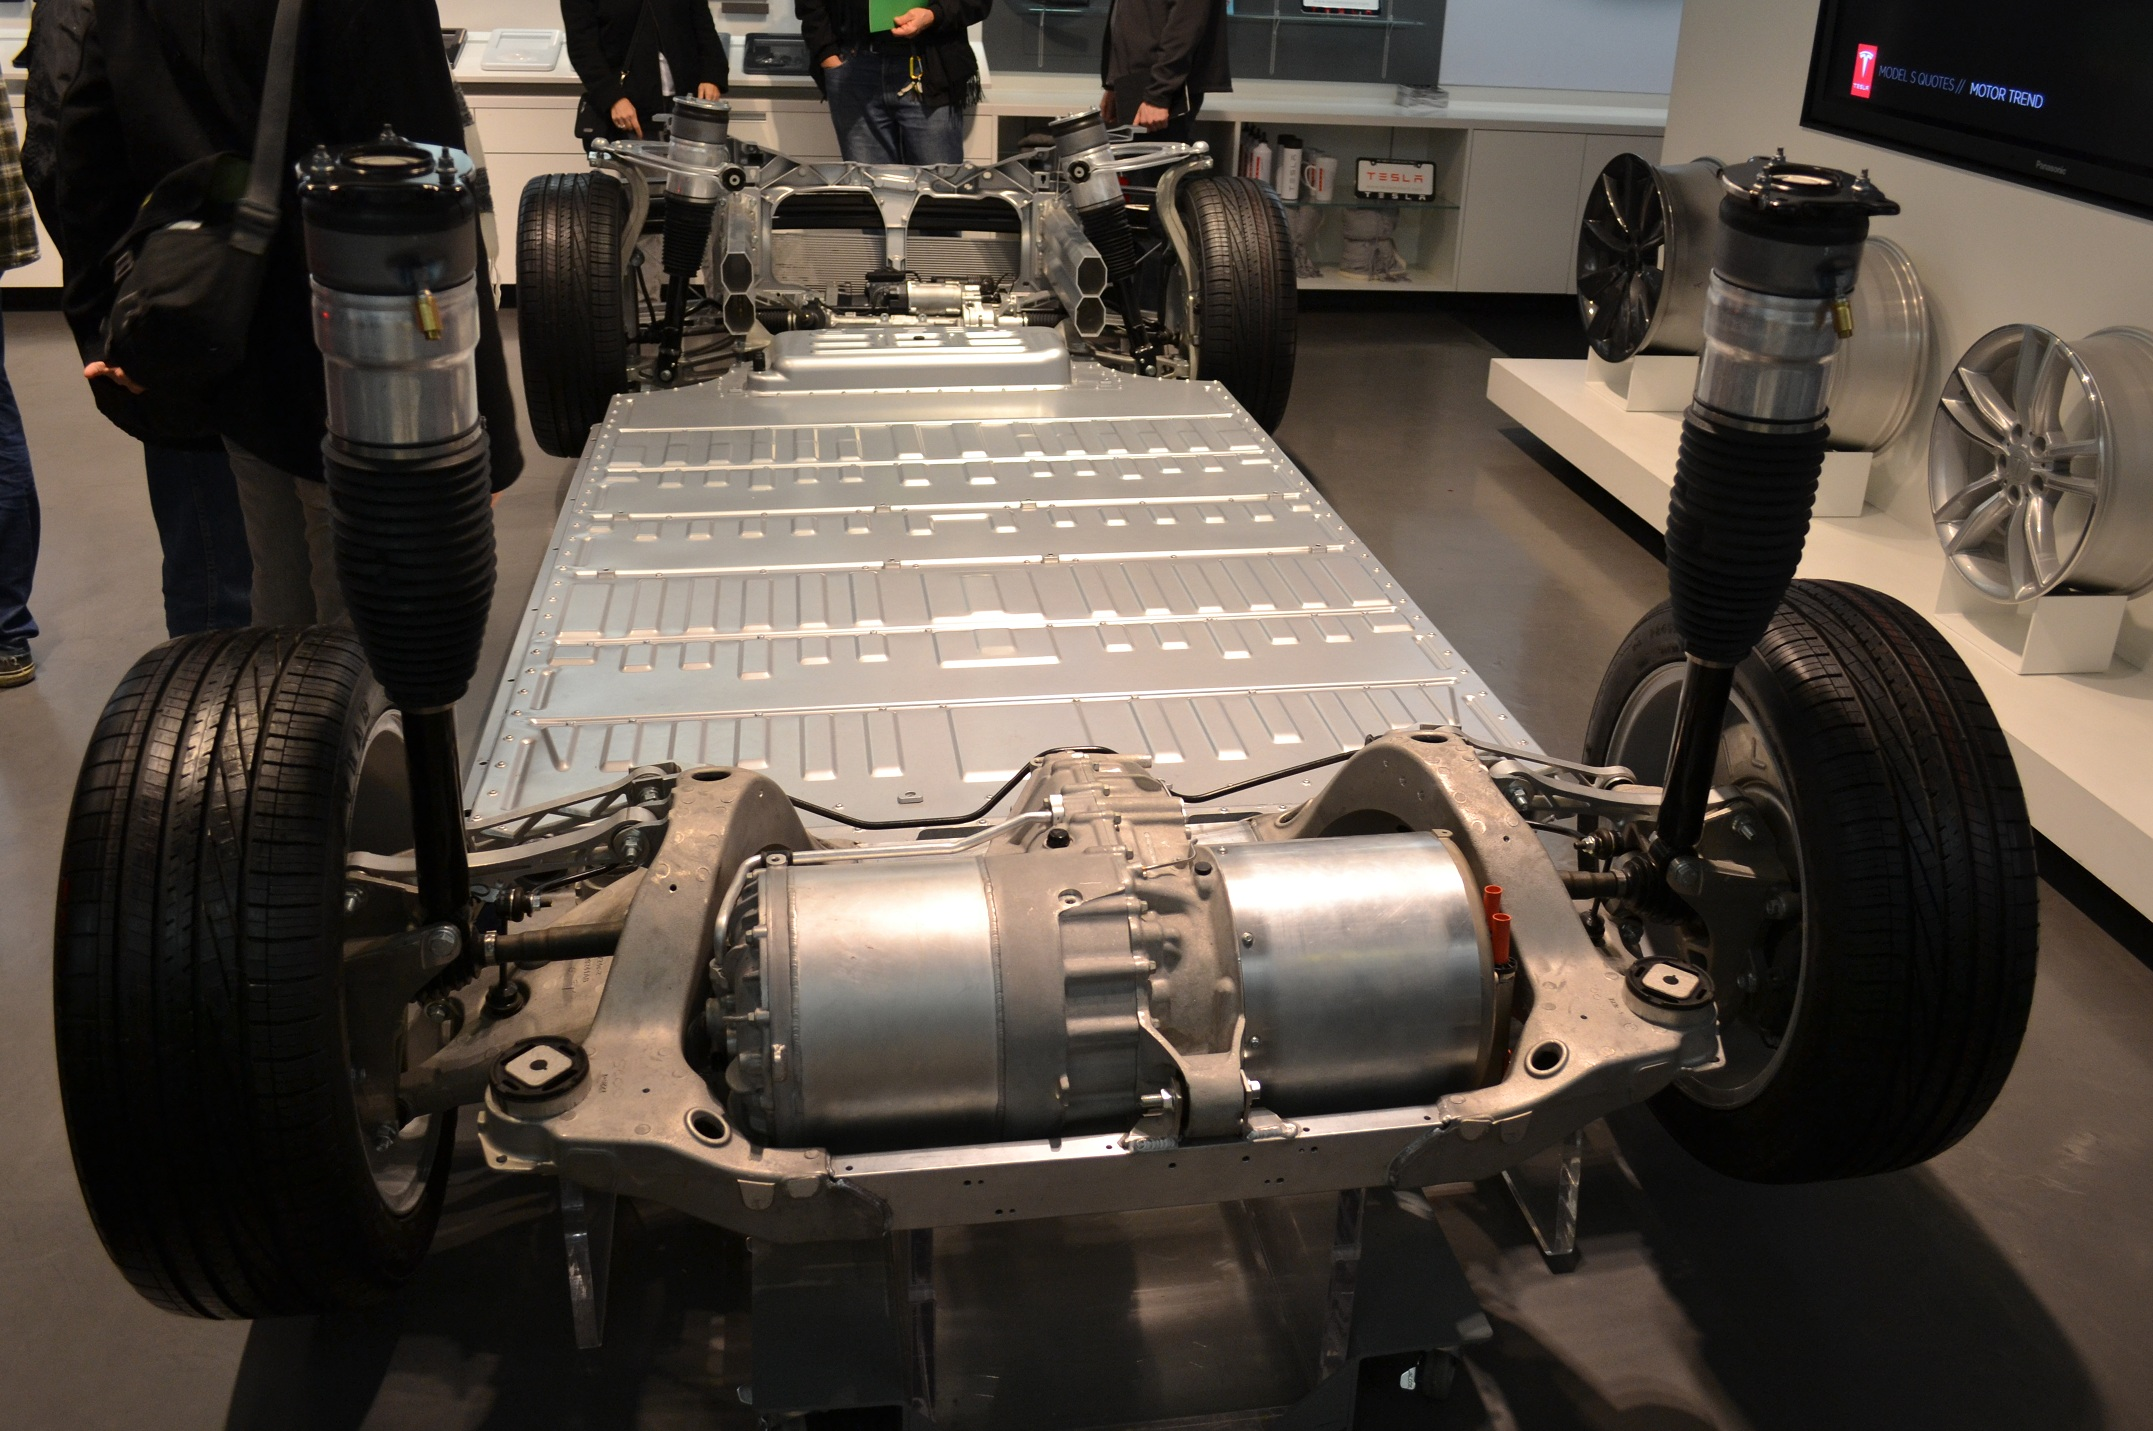 A rolling chassis of the Tesla Model S - the battery, wheels, motors, and not much else.